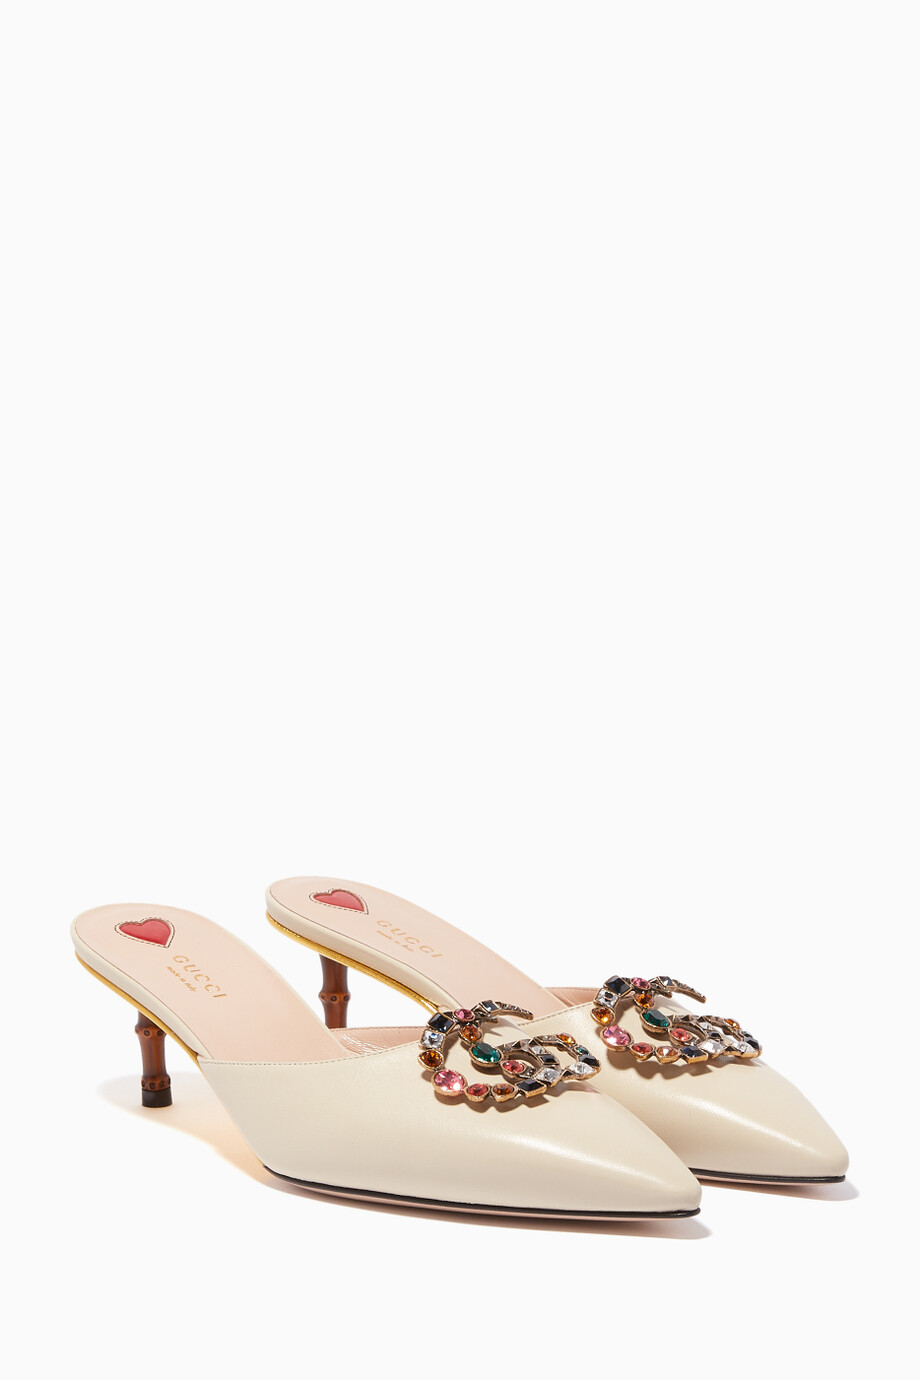 a190a3c4d00f Shop Gucci White White Unia GG Crystal Embellished Mules for Women ...